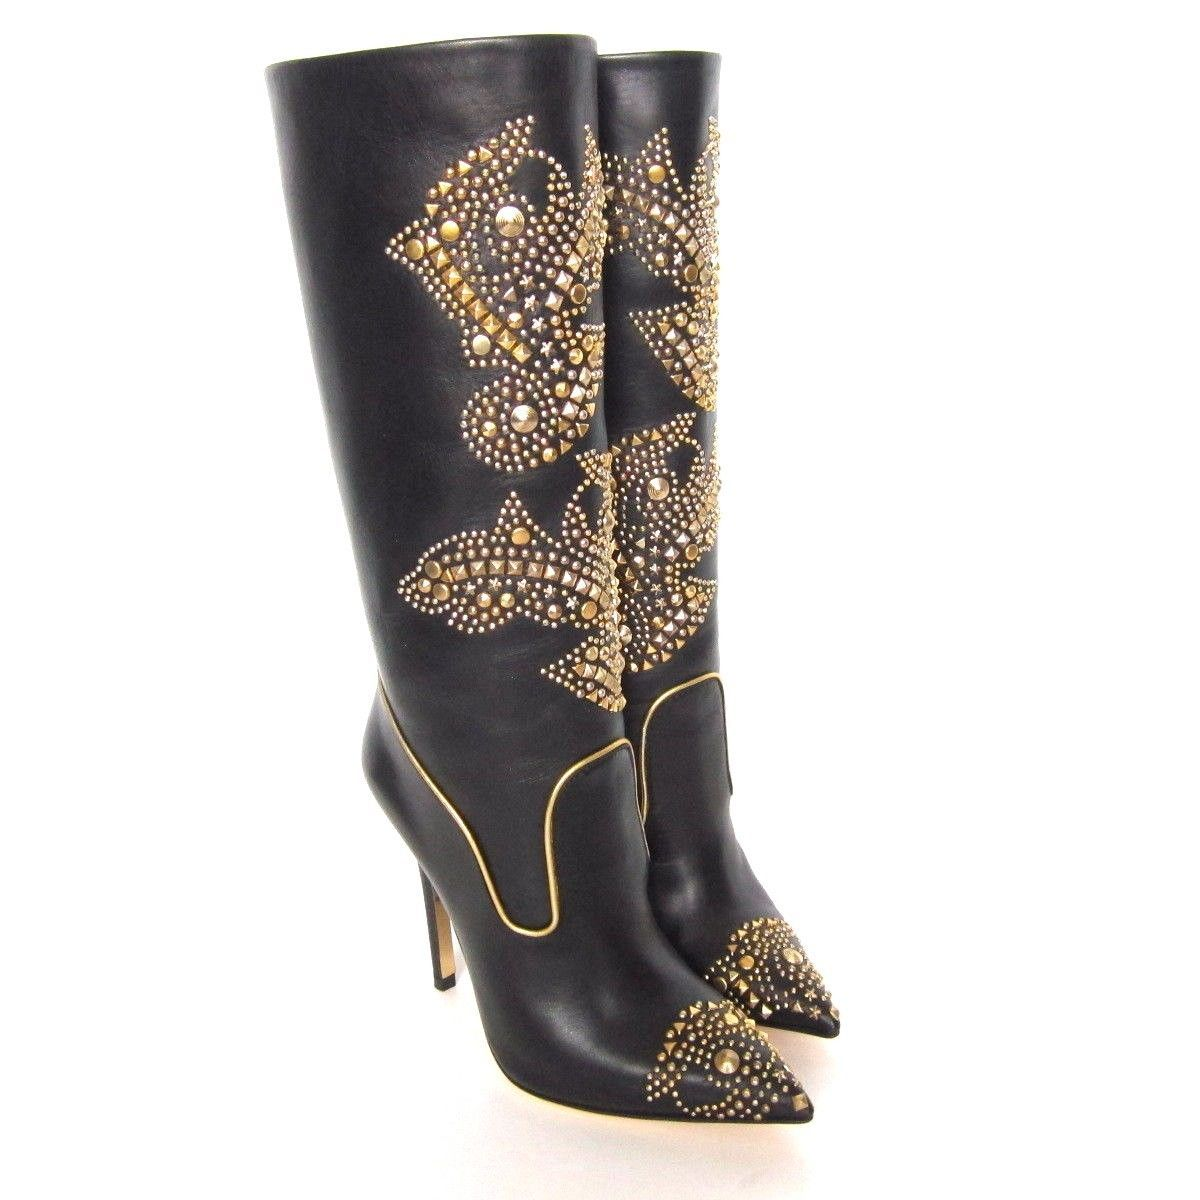 d71a8f658df W-1410300 New Versace Donna Black Leather Gold Embellished Boot Size 35.5 US-5.5  -  699.99